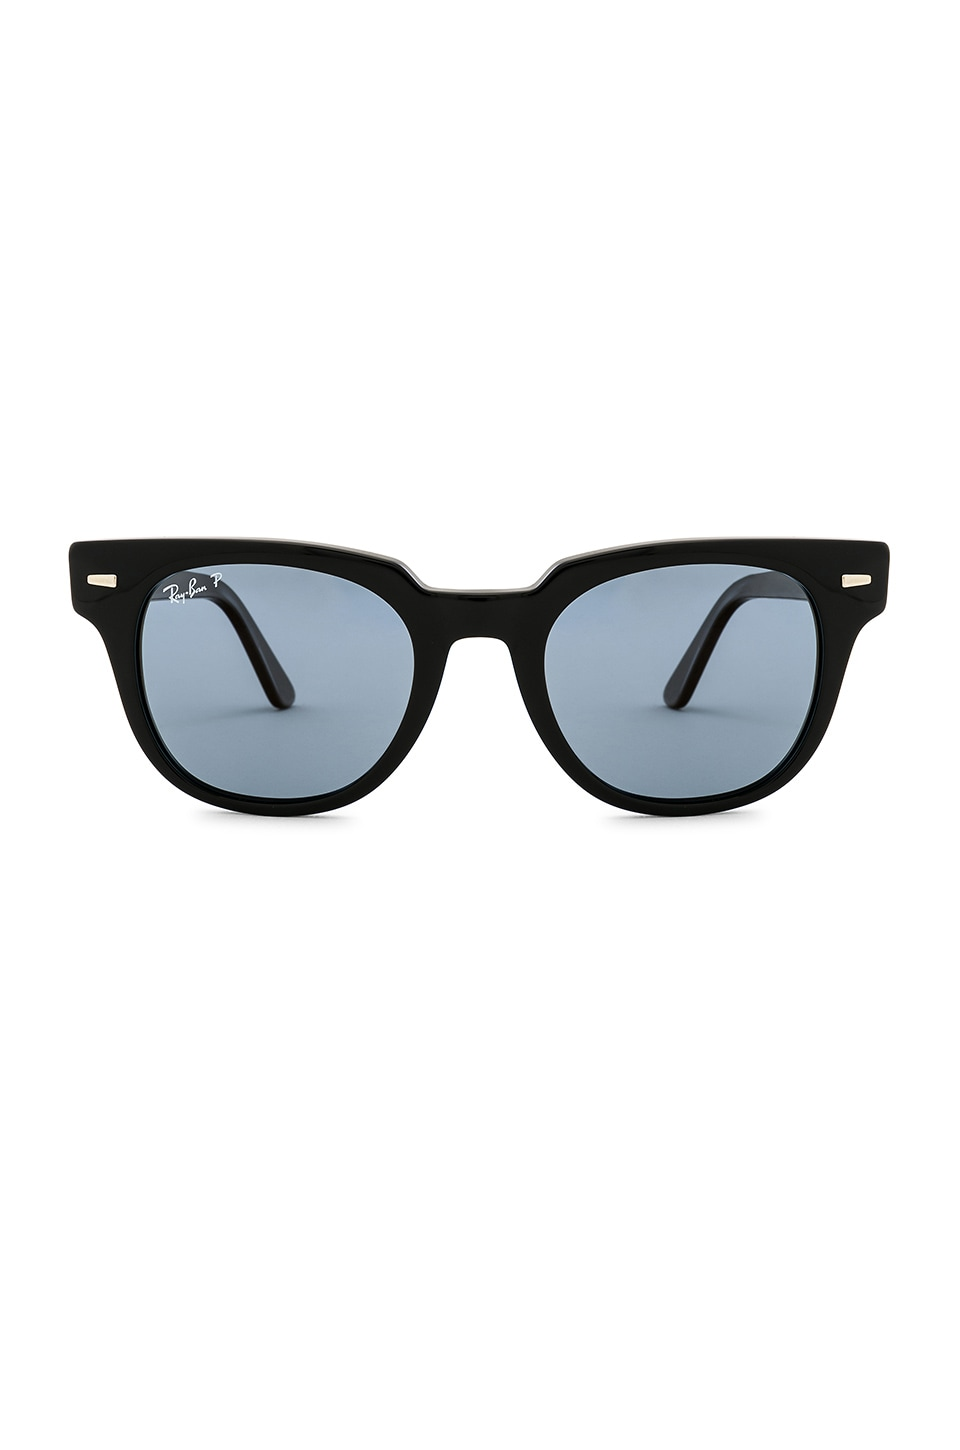 Ray-Ban Meteor in Shiny Black & Blue Gold Mirror